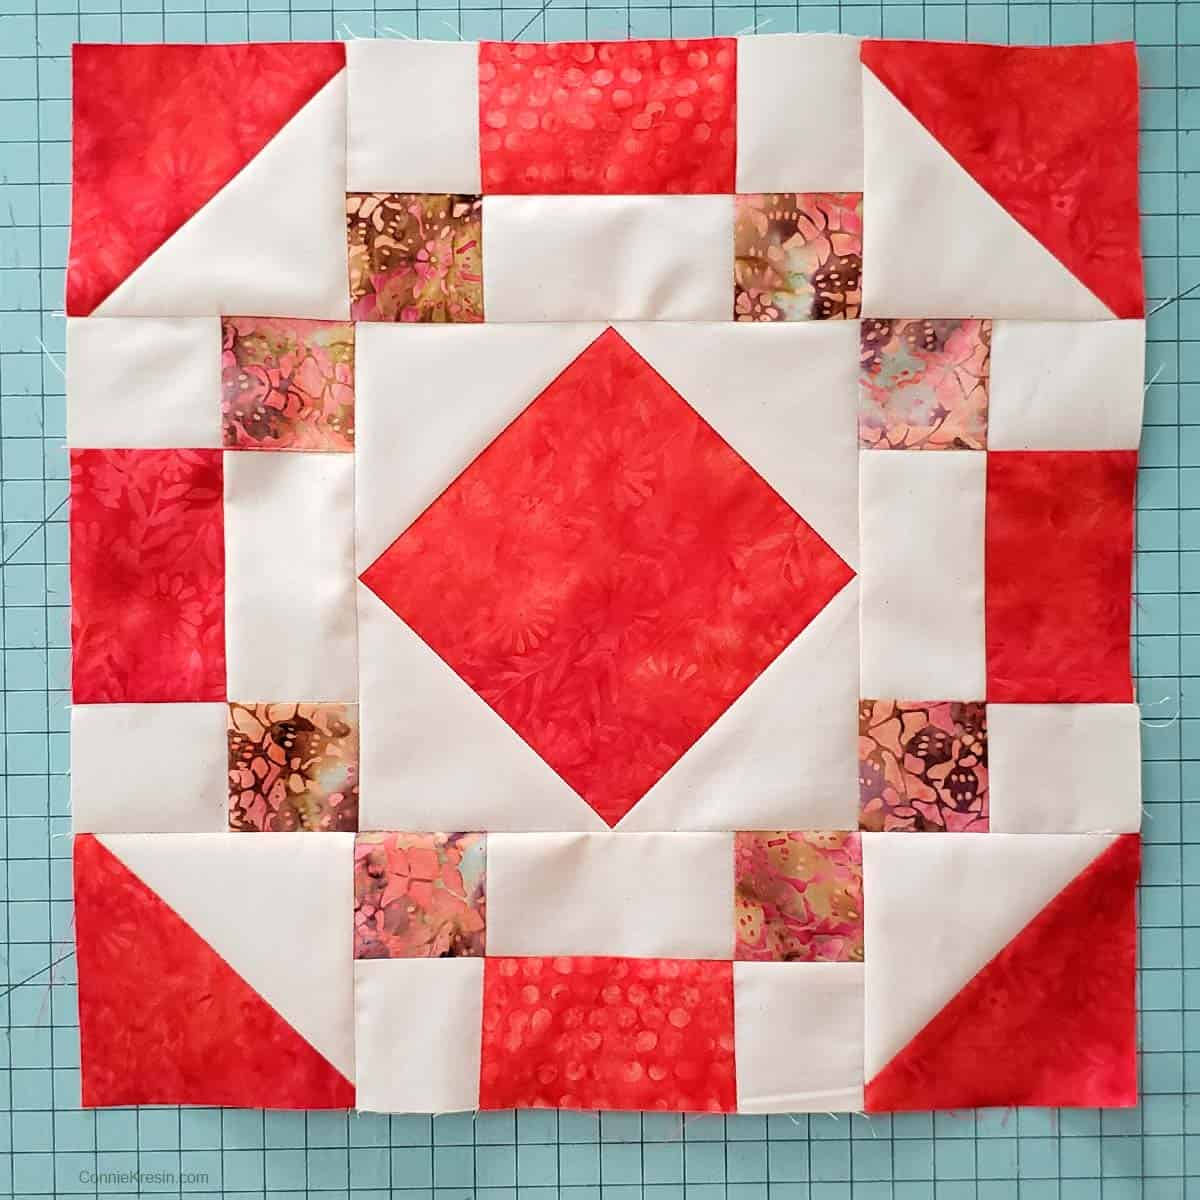 Completed Coral Jewel table runner block